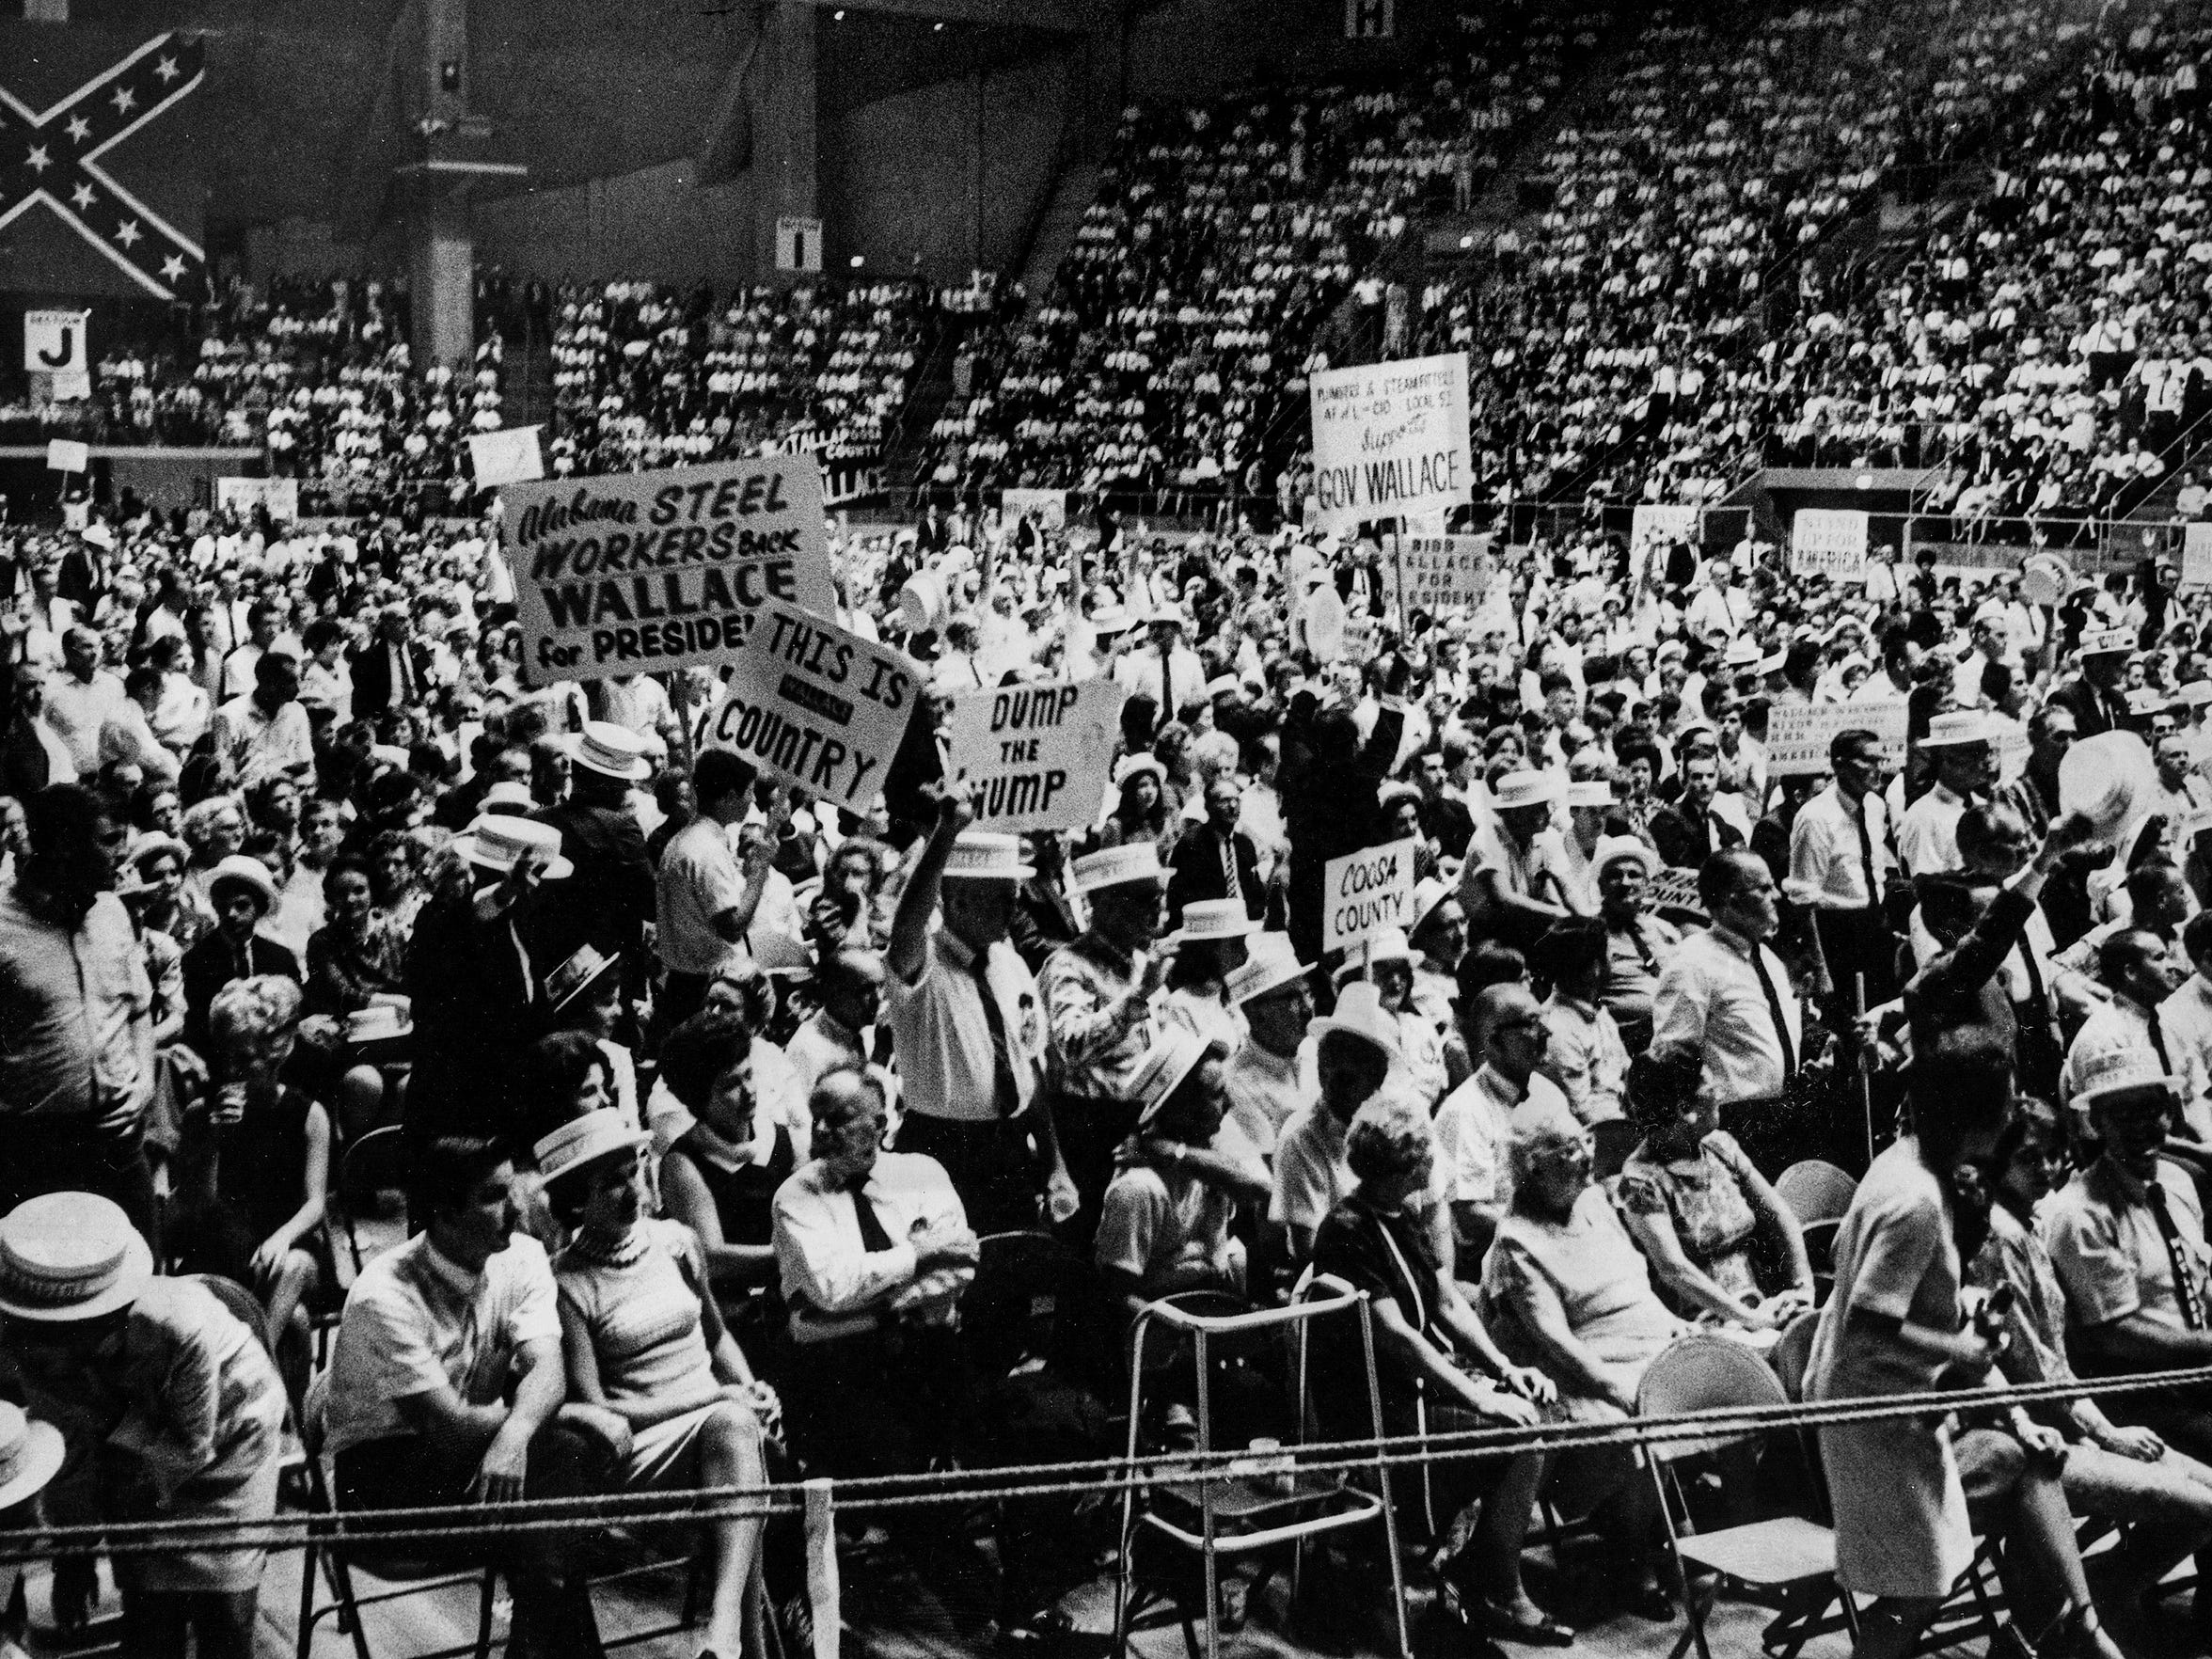 A rally for presidential candidate George Wallace at Garrett Coliseum in Montgomery, Ala. in September 1968.